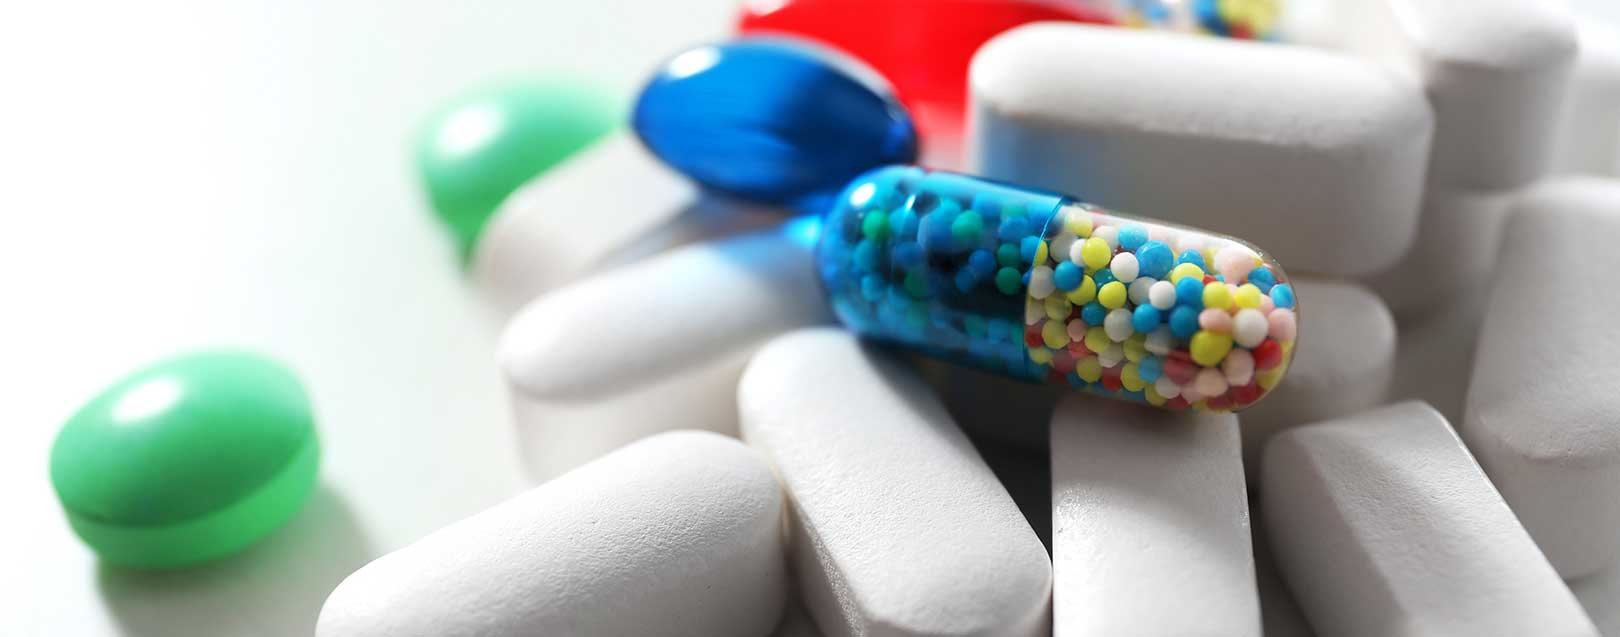 Indian drug firms to see moderation in growth in US